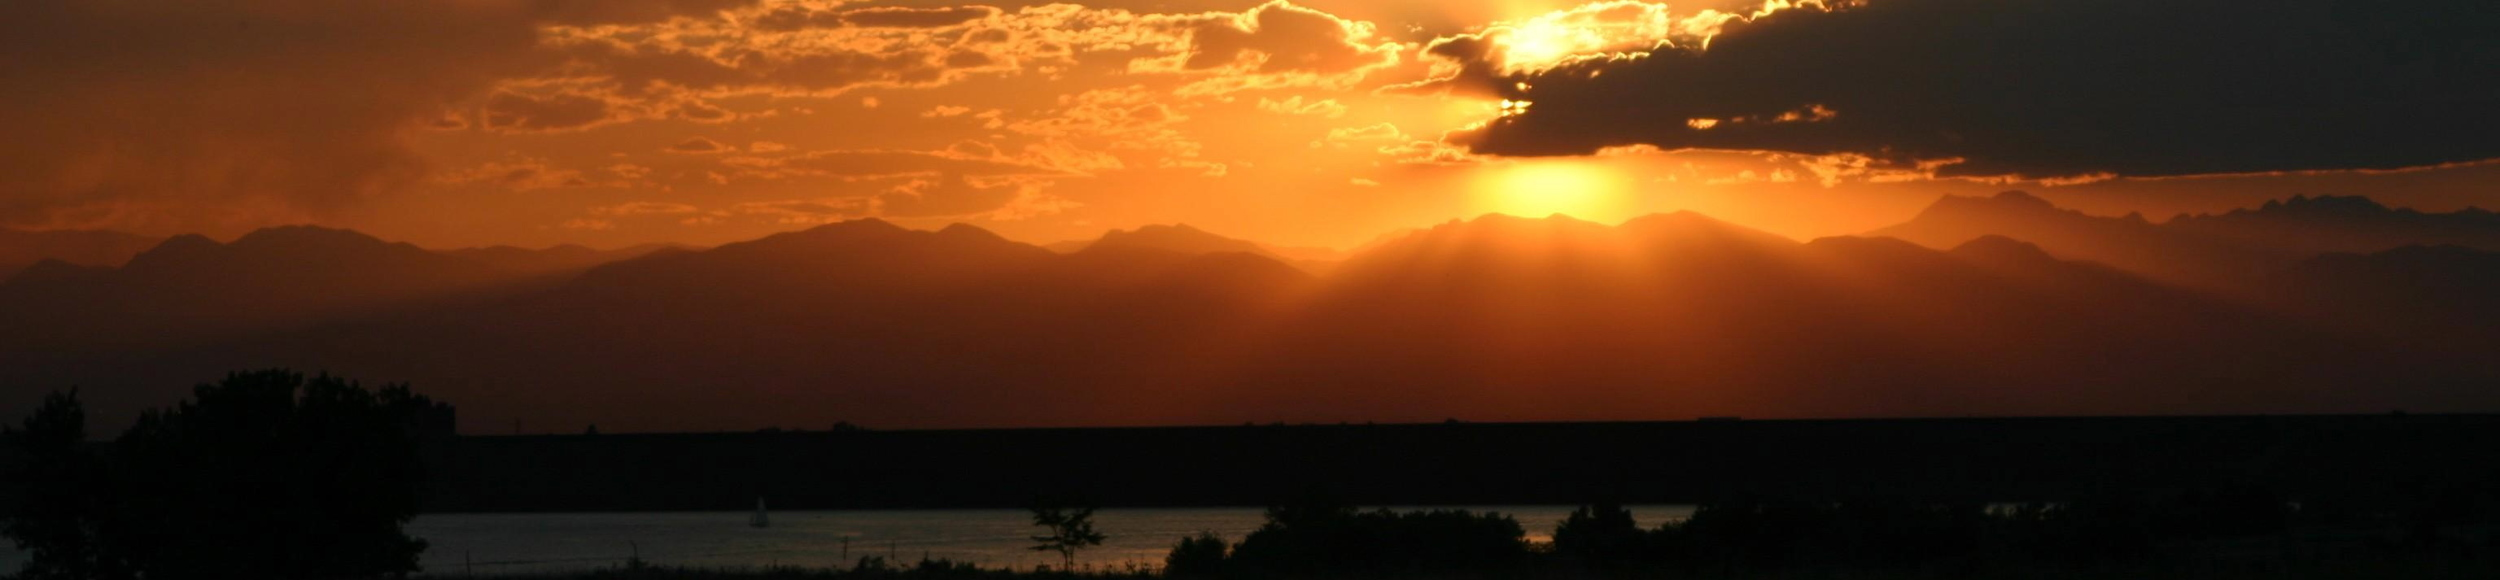 Thanks to our friend Paul Erdmann of RE/MAX Alliance Aurora for this great sunset photo over Cherry Creek Reservoir.